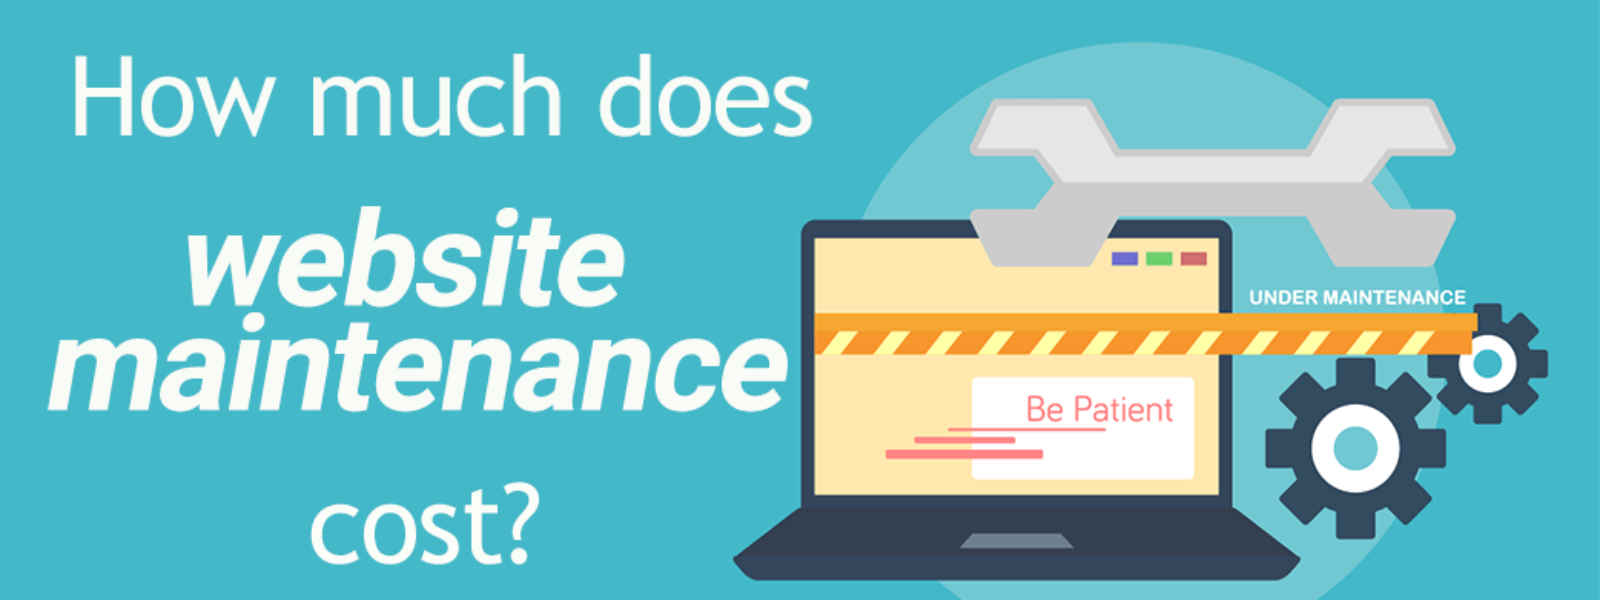 How much does website maintenance cost?